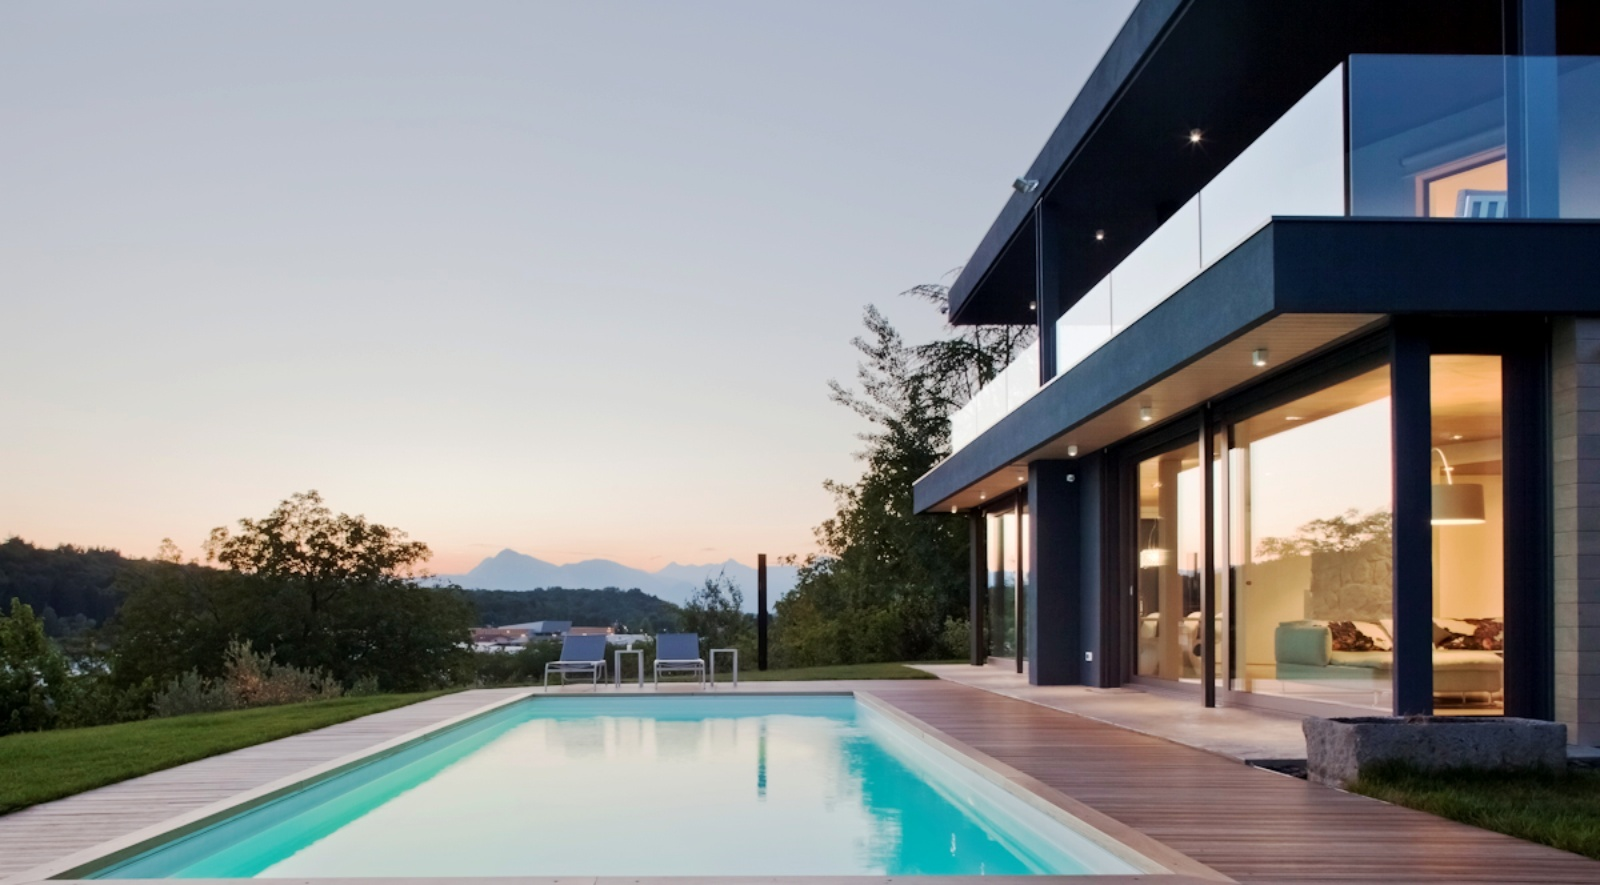 Villa on the hills of Udine